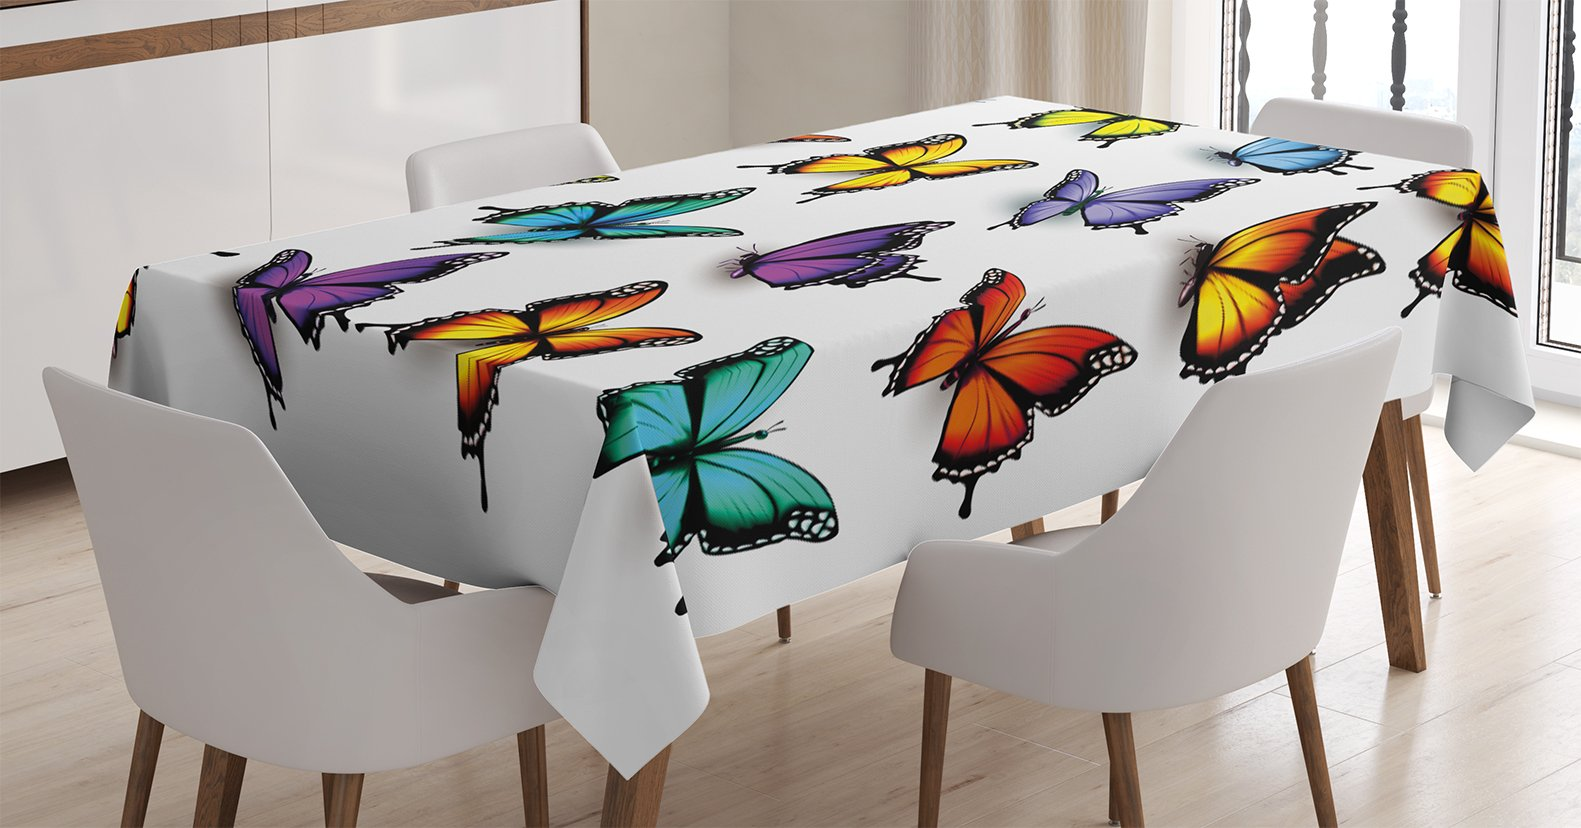 Ambesonne Butterfly Tablecloth, Cute Colorful Moth Figures Spiritual Wings Animal Spring Inspirational Design, Dining Room Kitchen Rectangular Table Cover, 60 W X 90 L inches, Multicolor